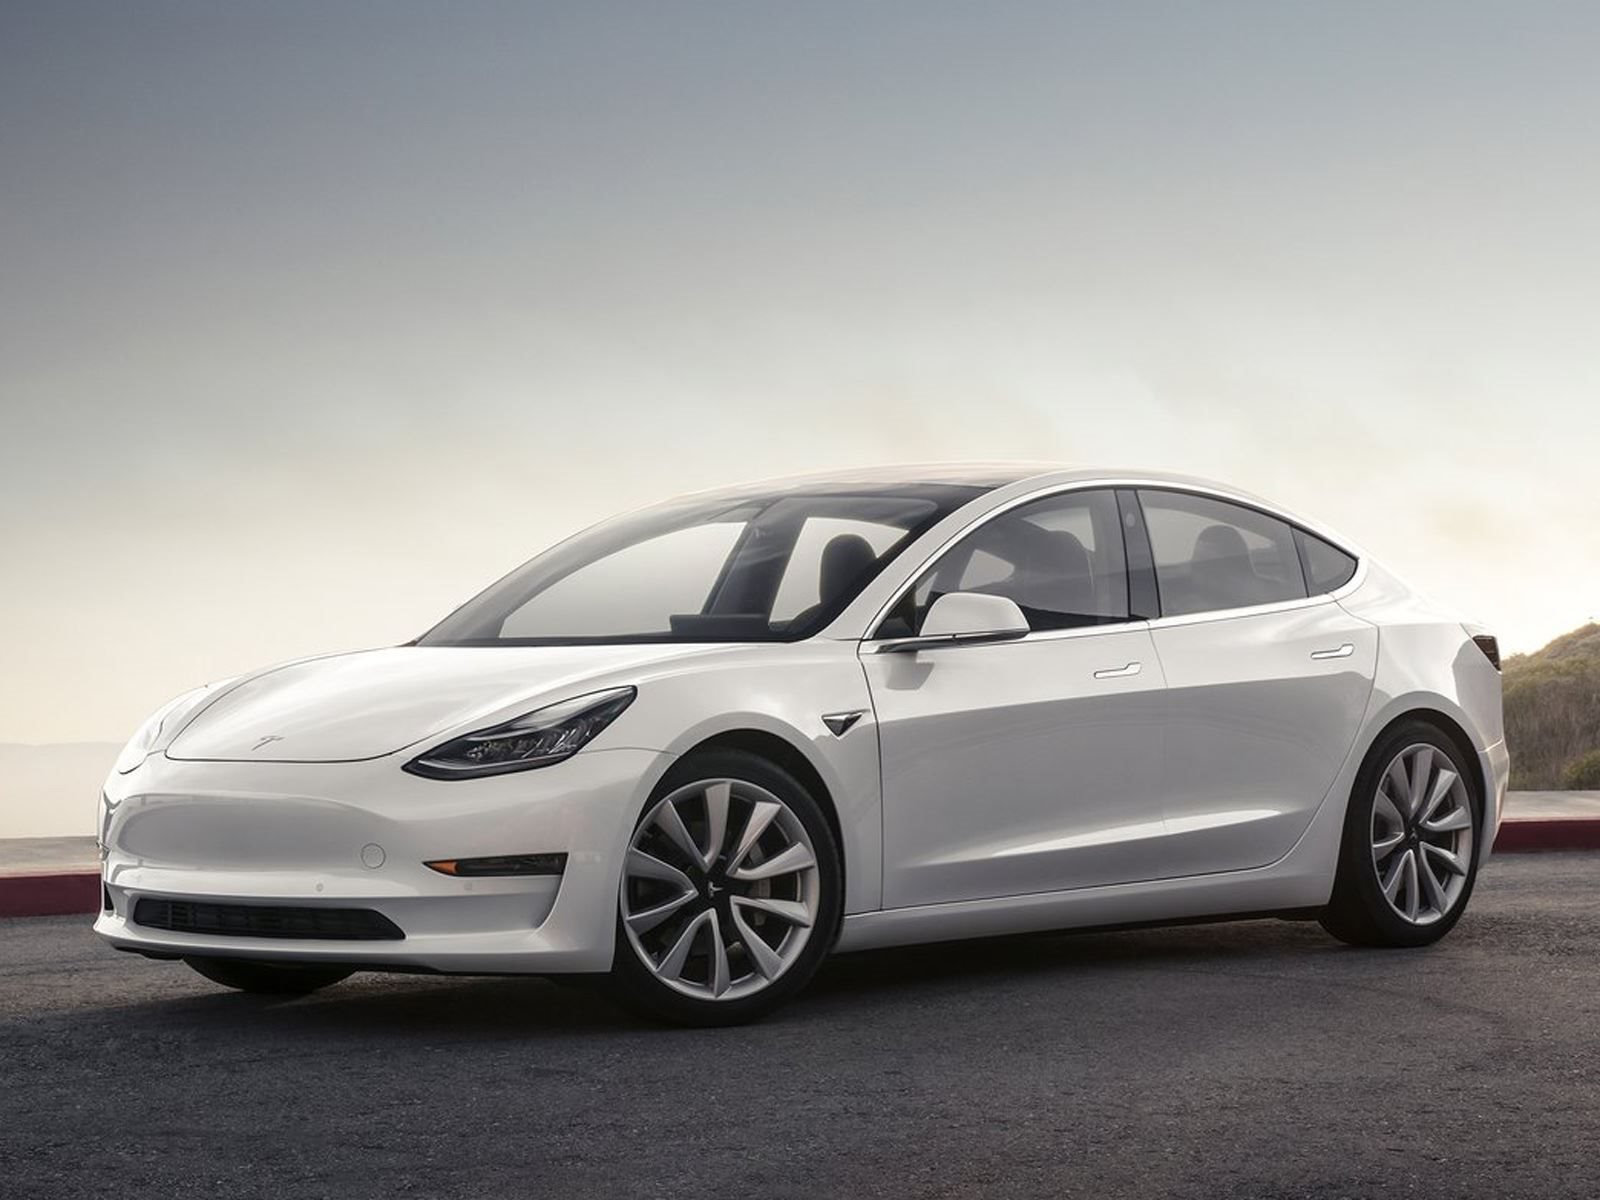 Tesla Model 3 Owners Are Having Some Abnormal Technical Issues | CarBuzz